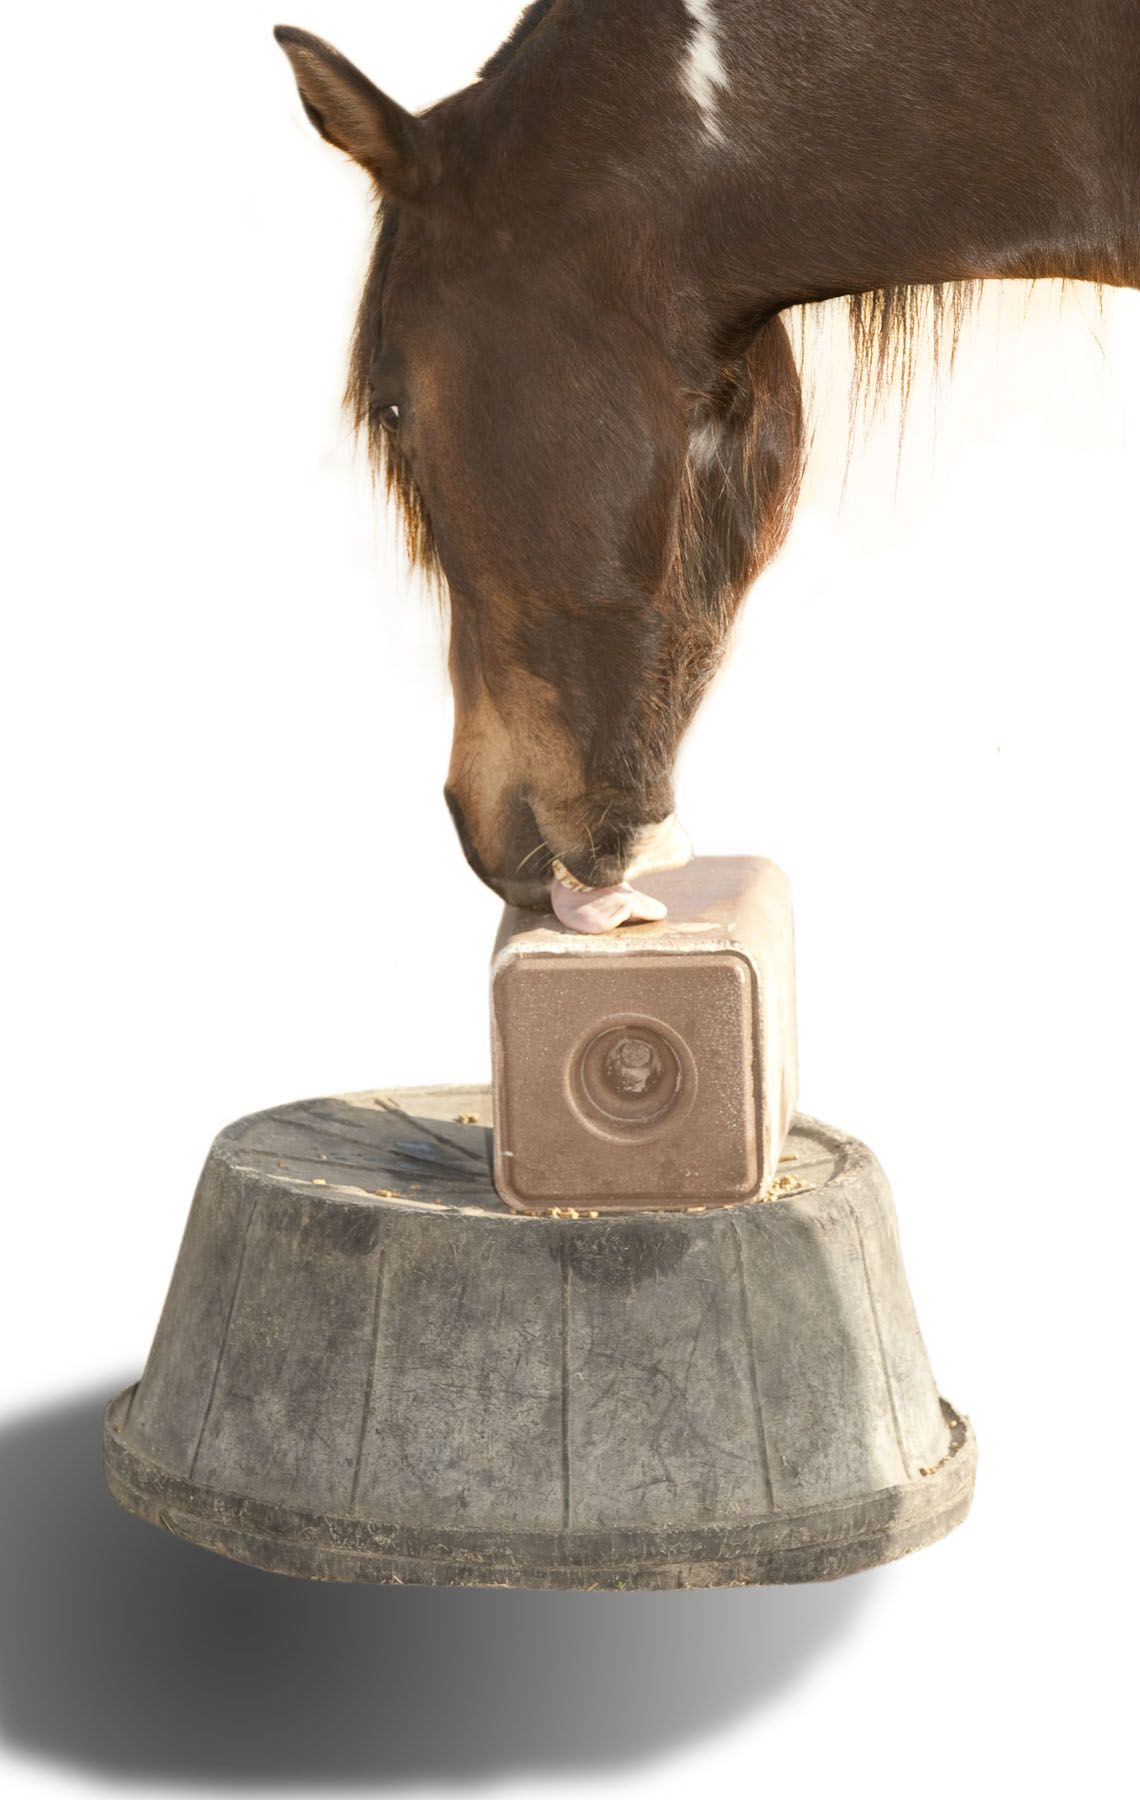 Check Your Salt Feeding Know How Horse Health Horses Diet Healthy Horses